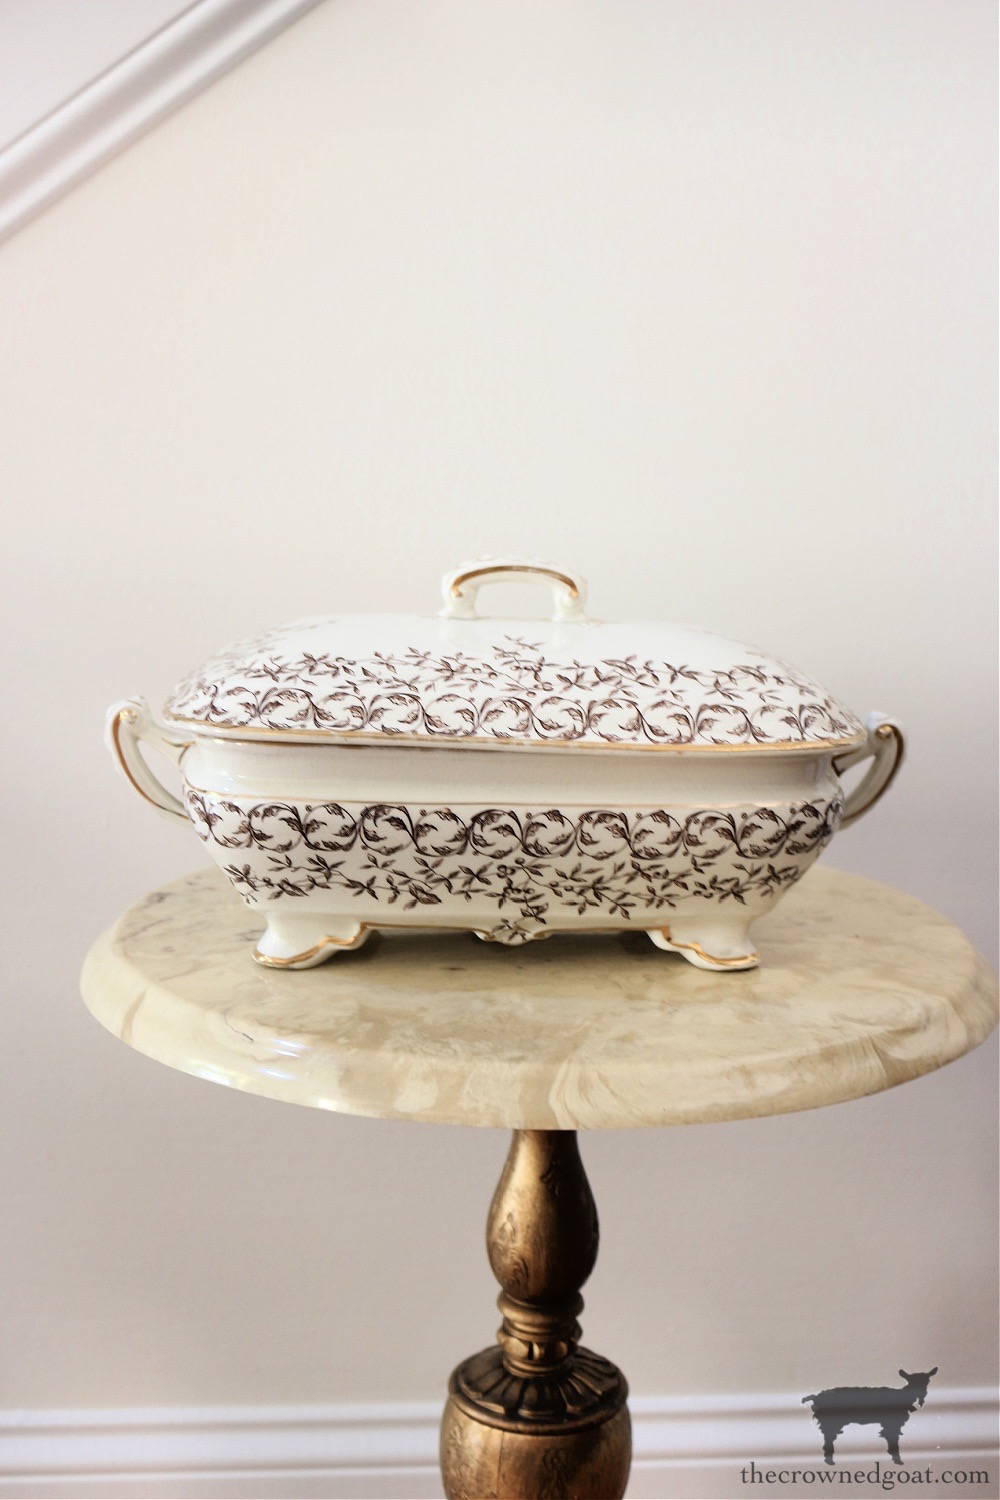 Brown and White Transferware-The Crowned Goat